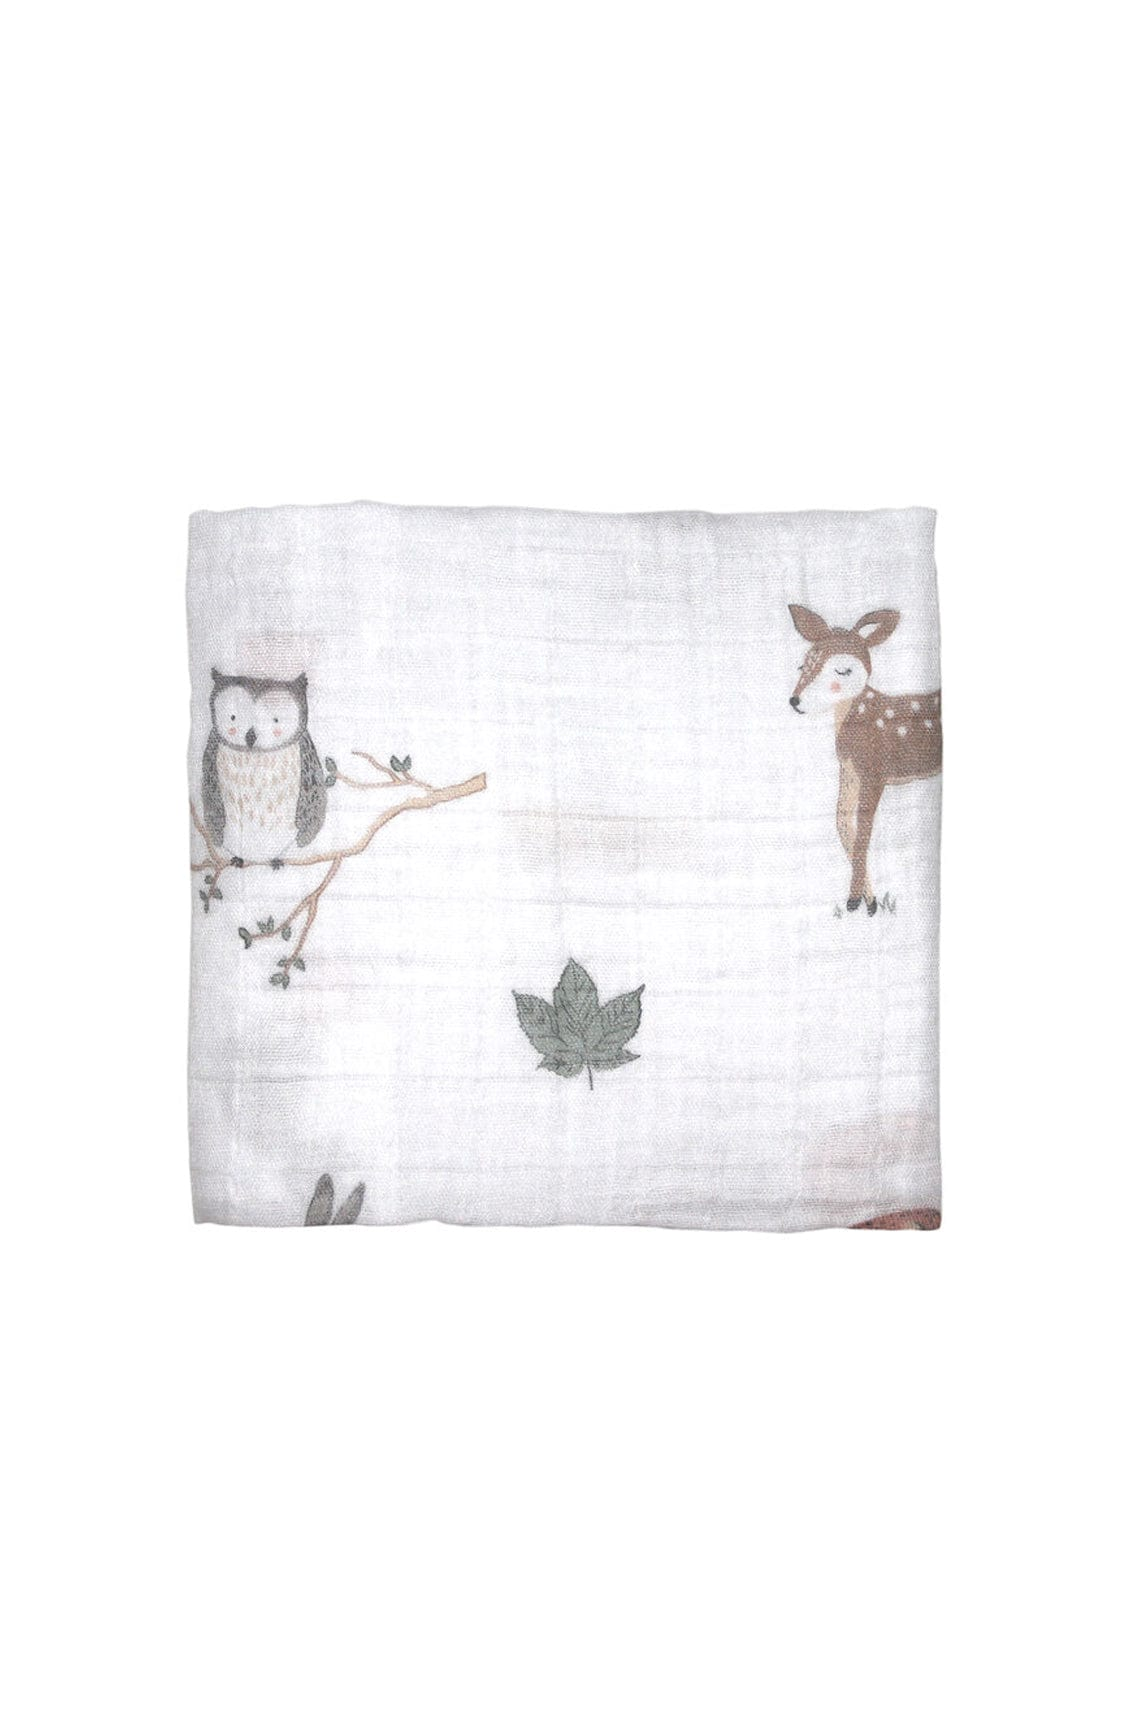 Mister Fly Woodland Muslin Wrap - Hello Little Birdie